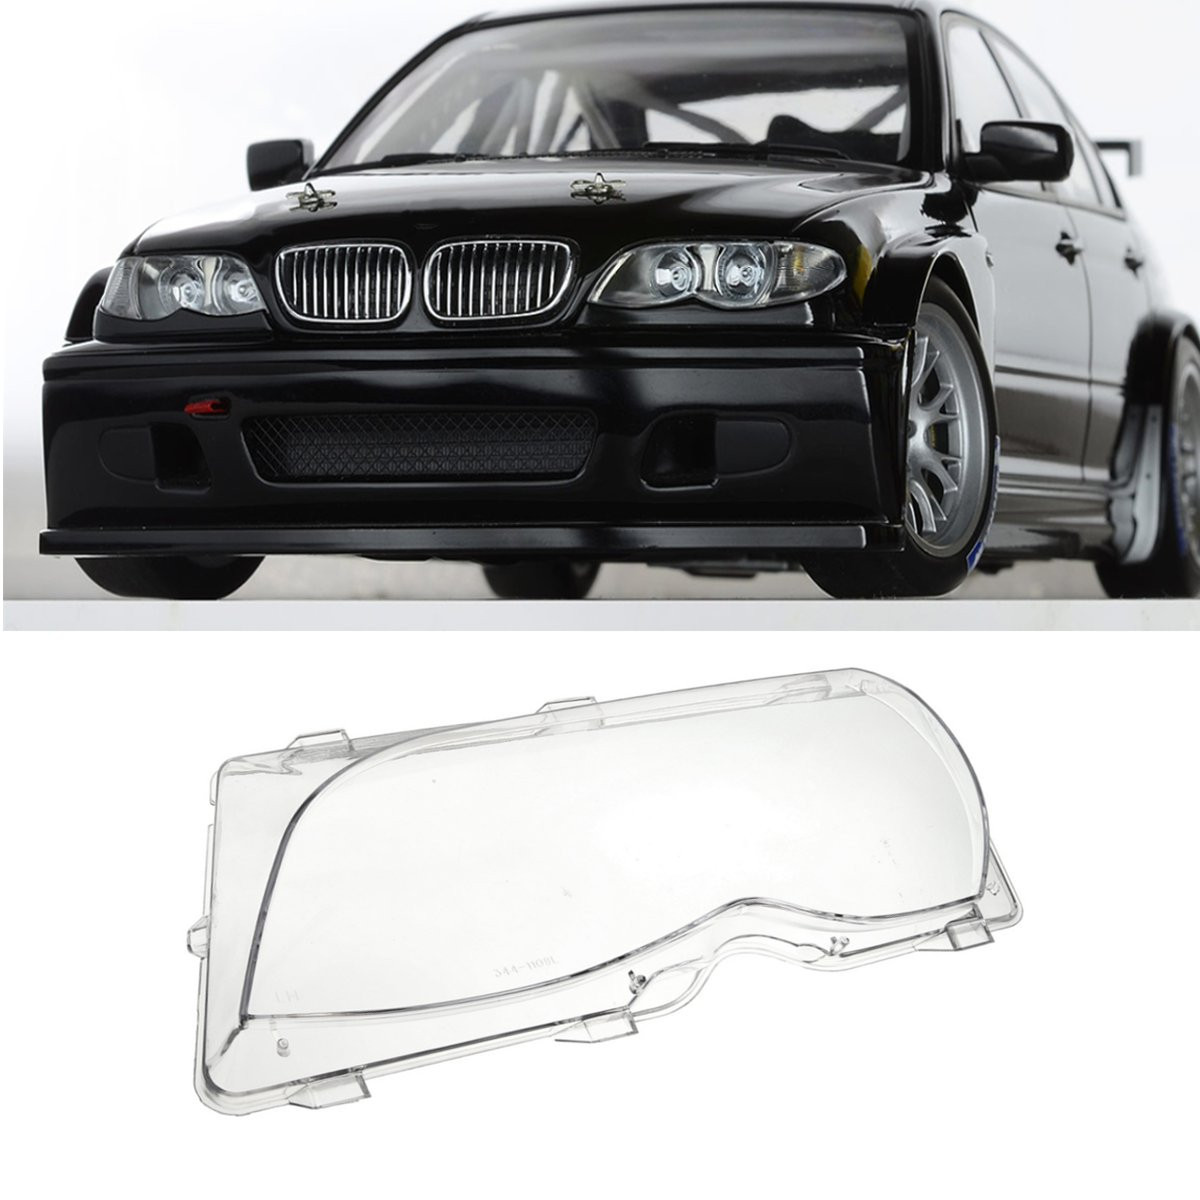 hight resolution of left driver side headlight lens plastic cover for bmw e46 3 series 4dr 2001 2002 2003 2004 2005 63126924045 replacement part in lamp hoods from automobiles